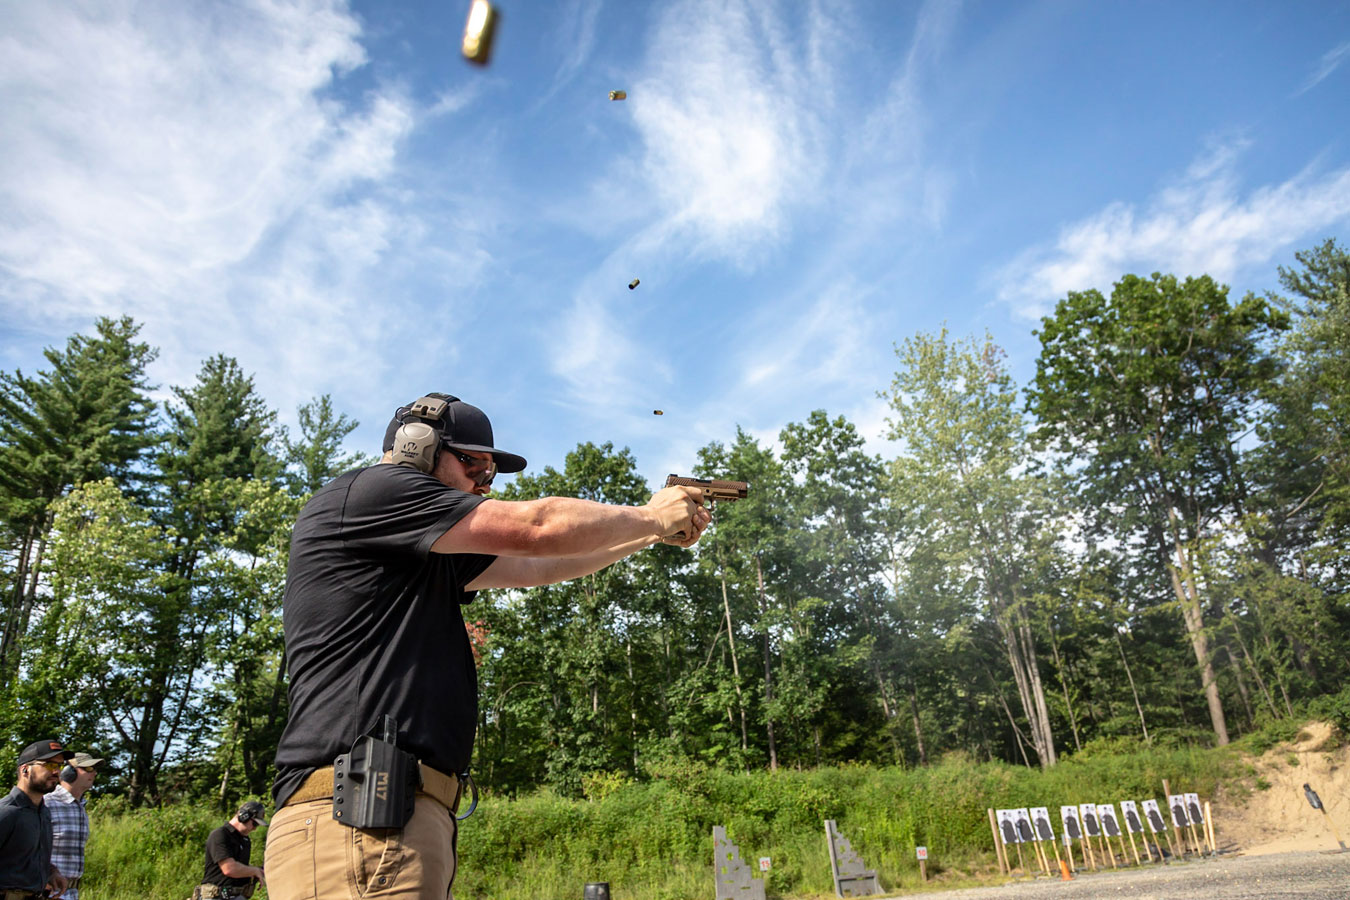 Locked two handed grip shooting a pistol